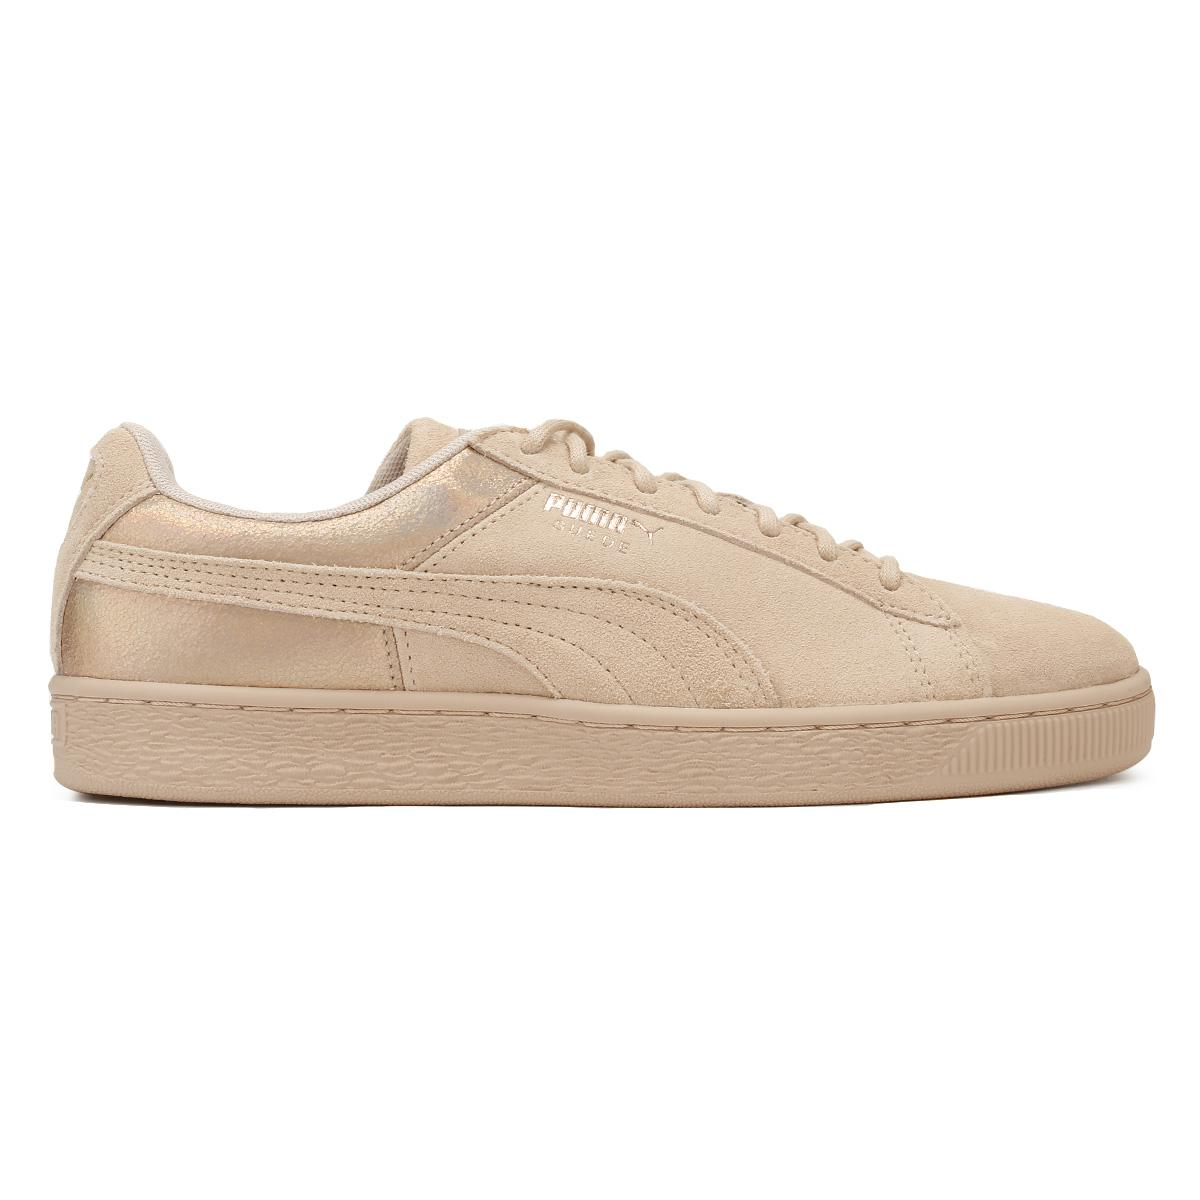 Suede Lunalux Wn's Trainers